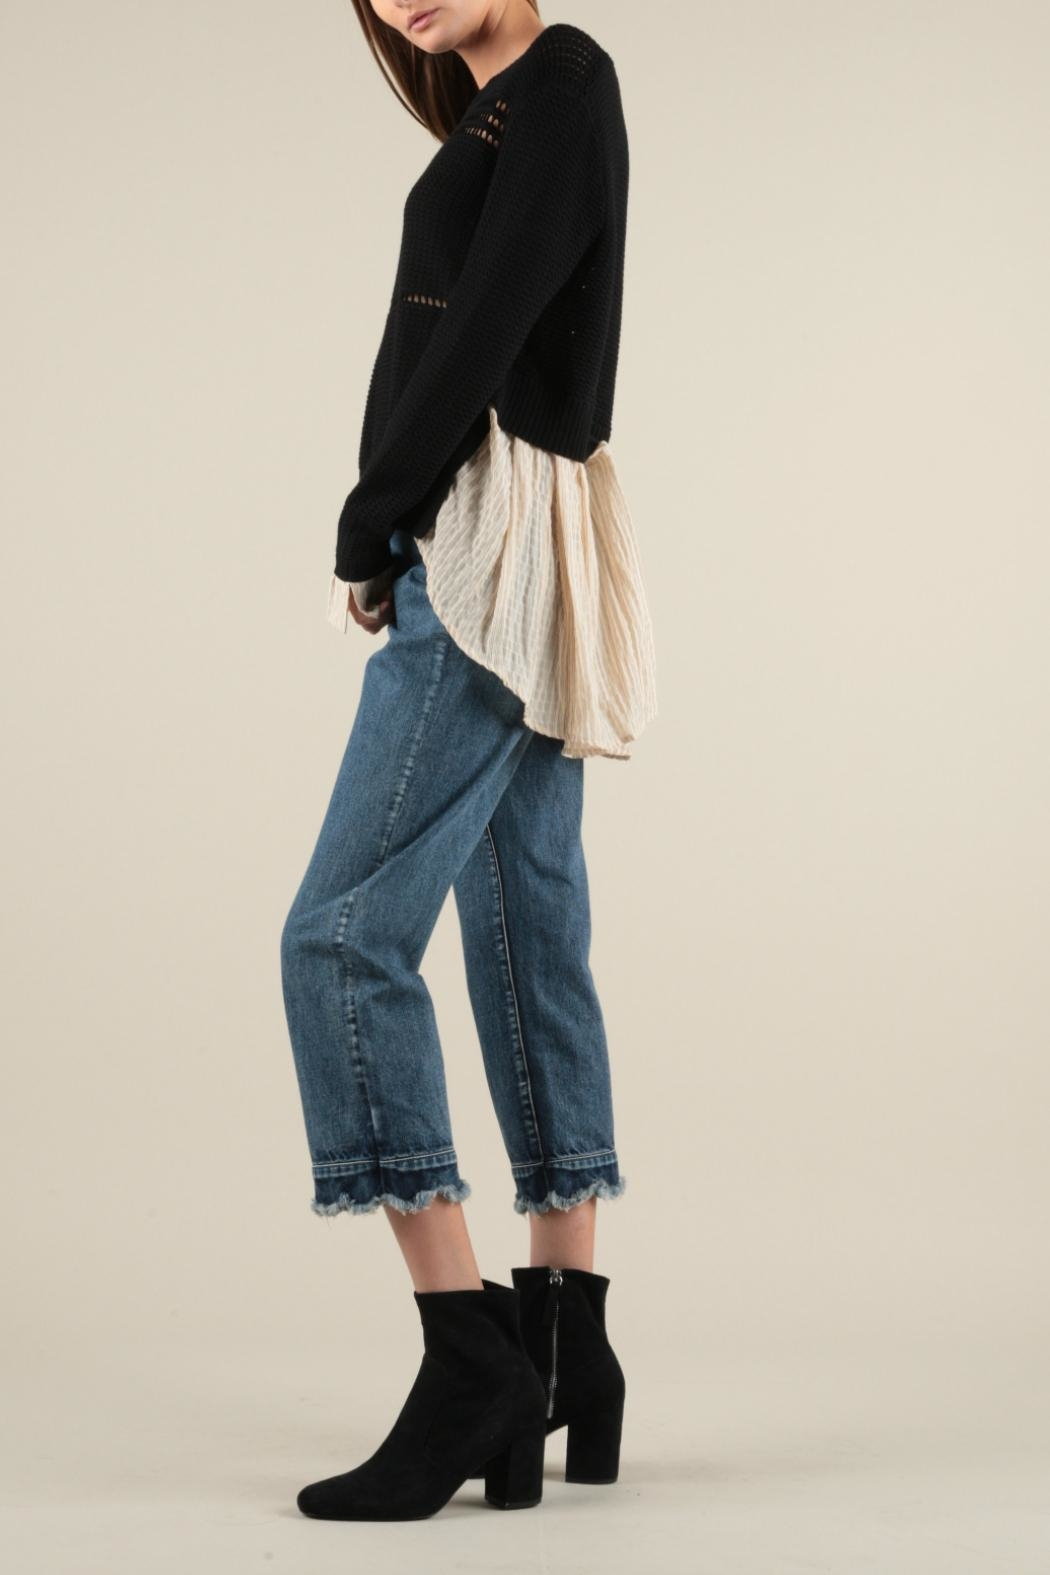 Current Air Shirt Layer Sweater - Back Cropped Image